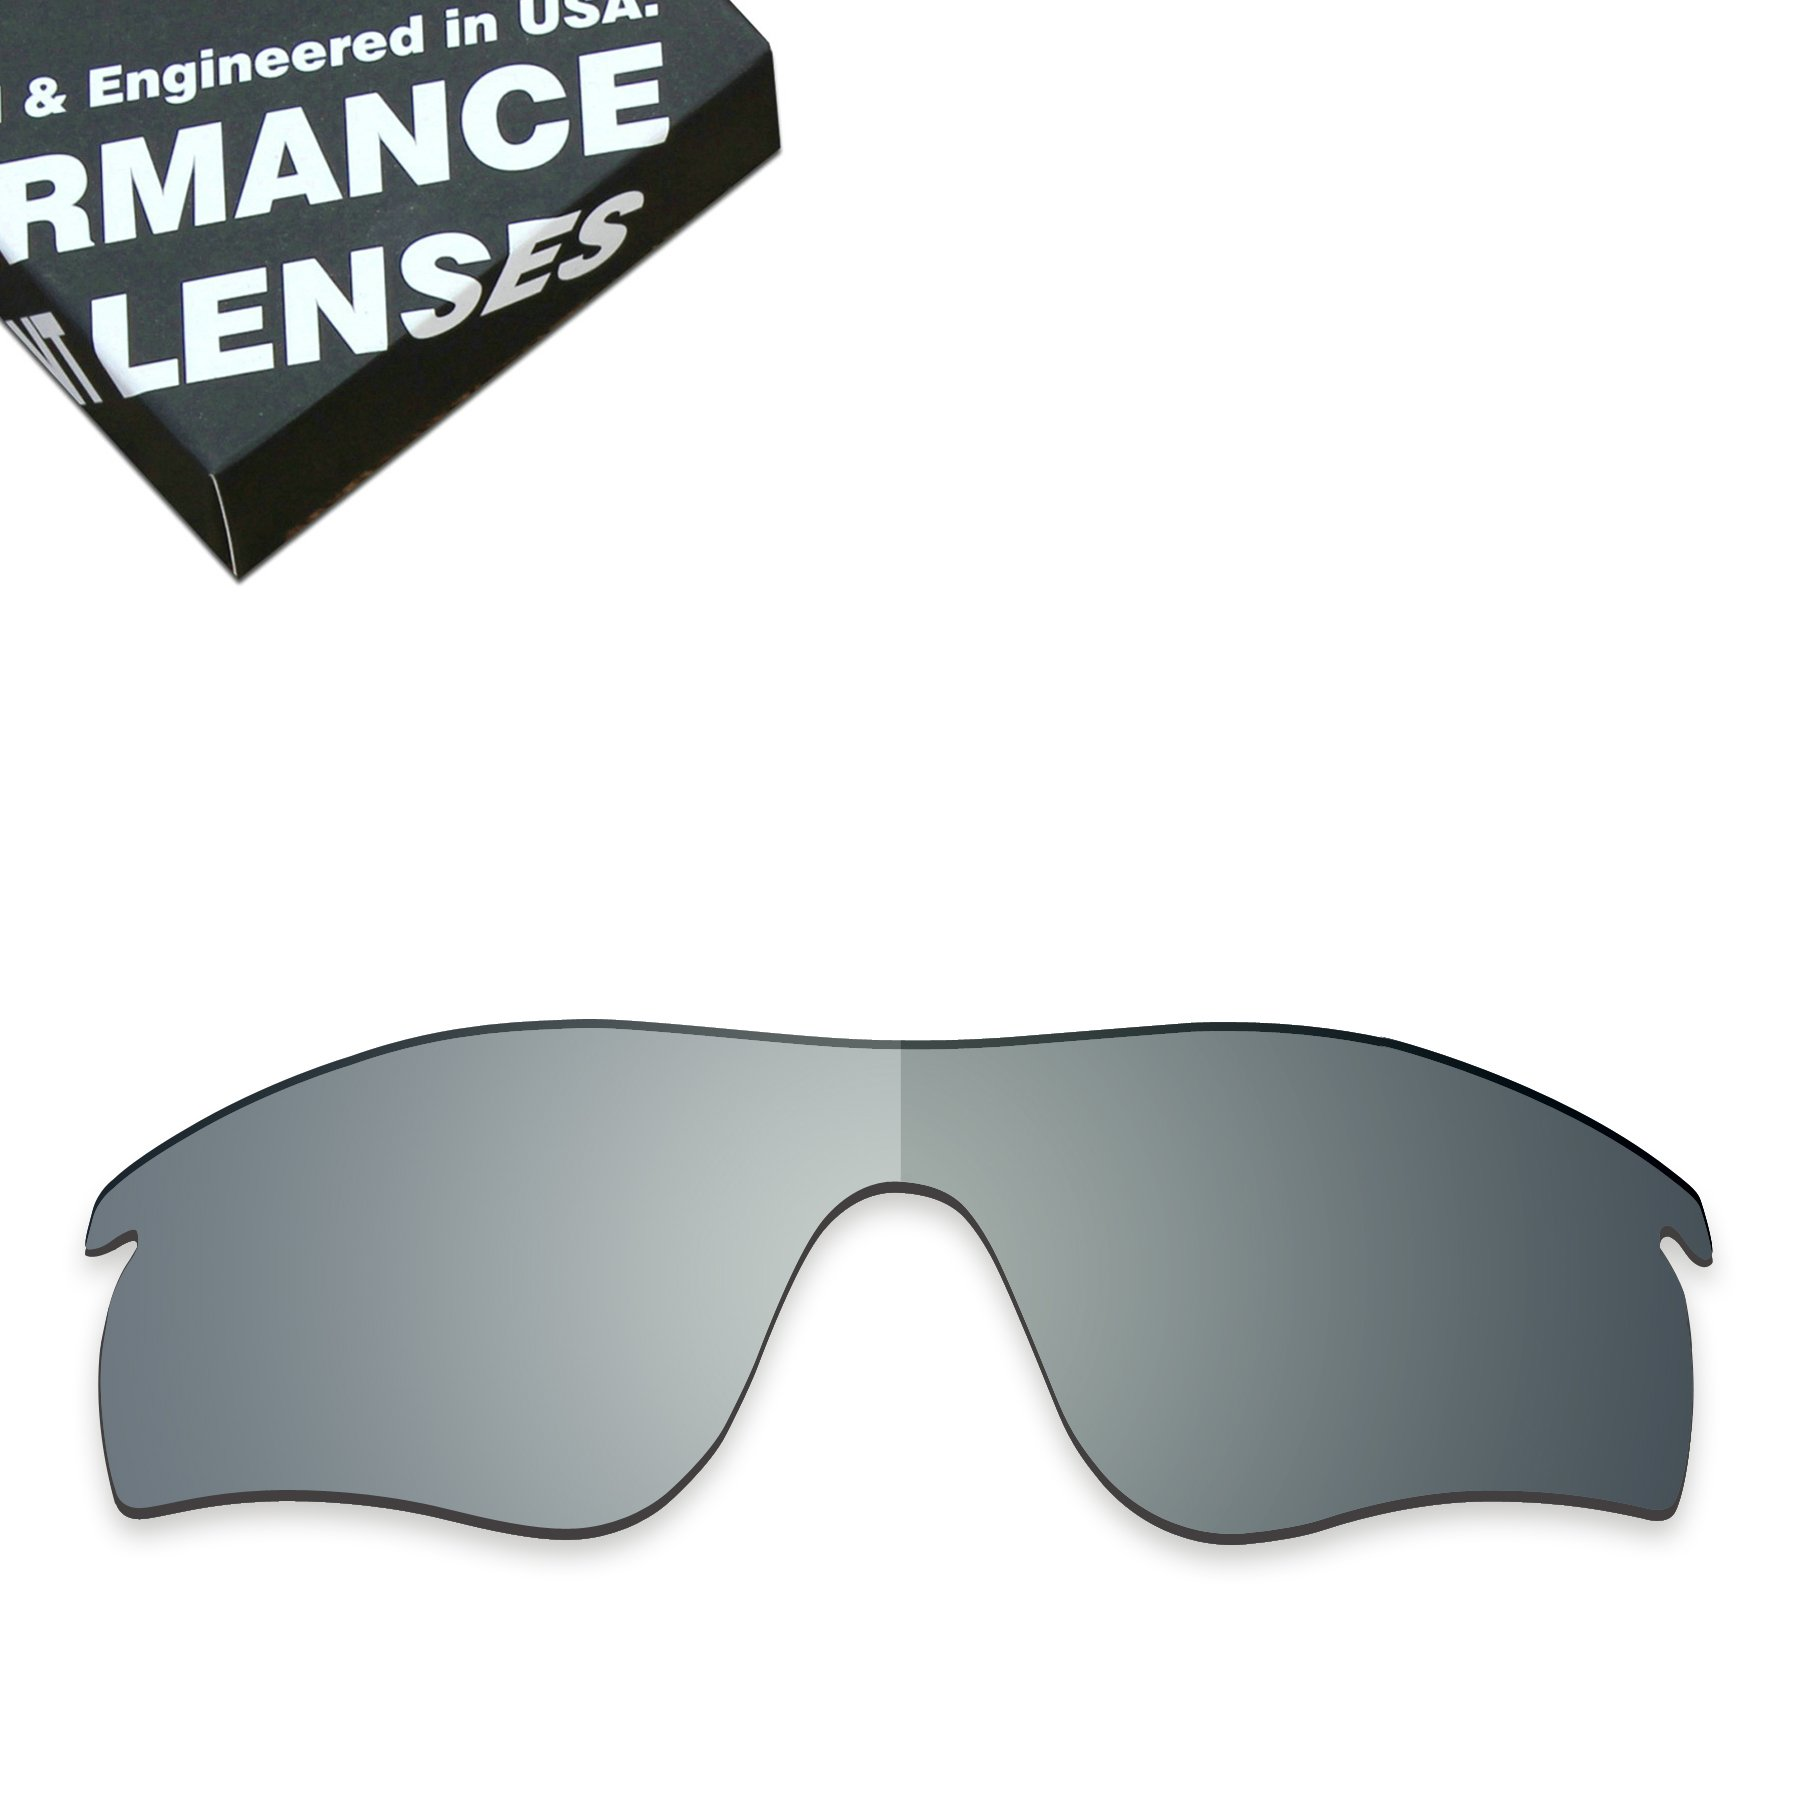 ToughAsNails Polarized Lens Replacement for Oakley RadarLock Path Sunglass - Options